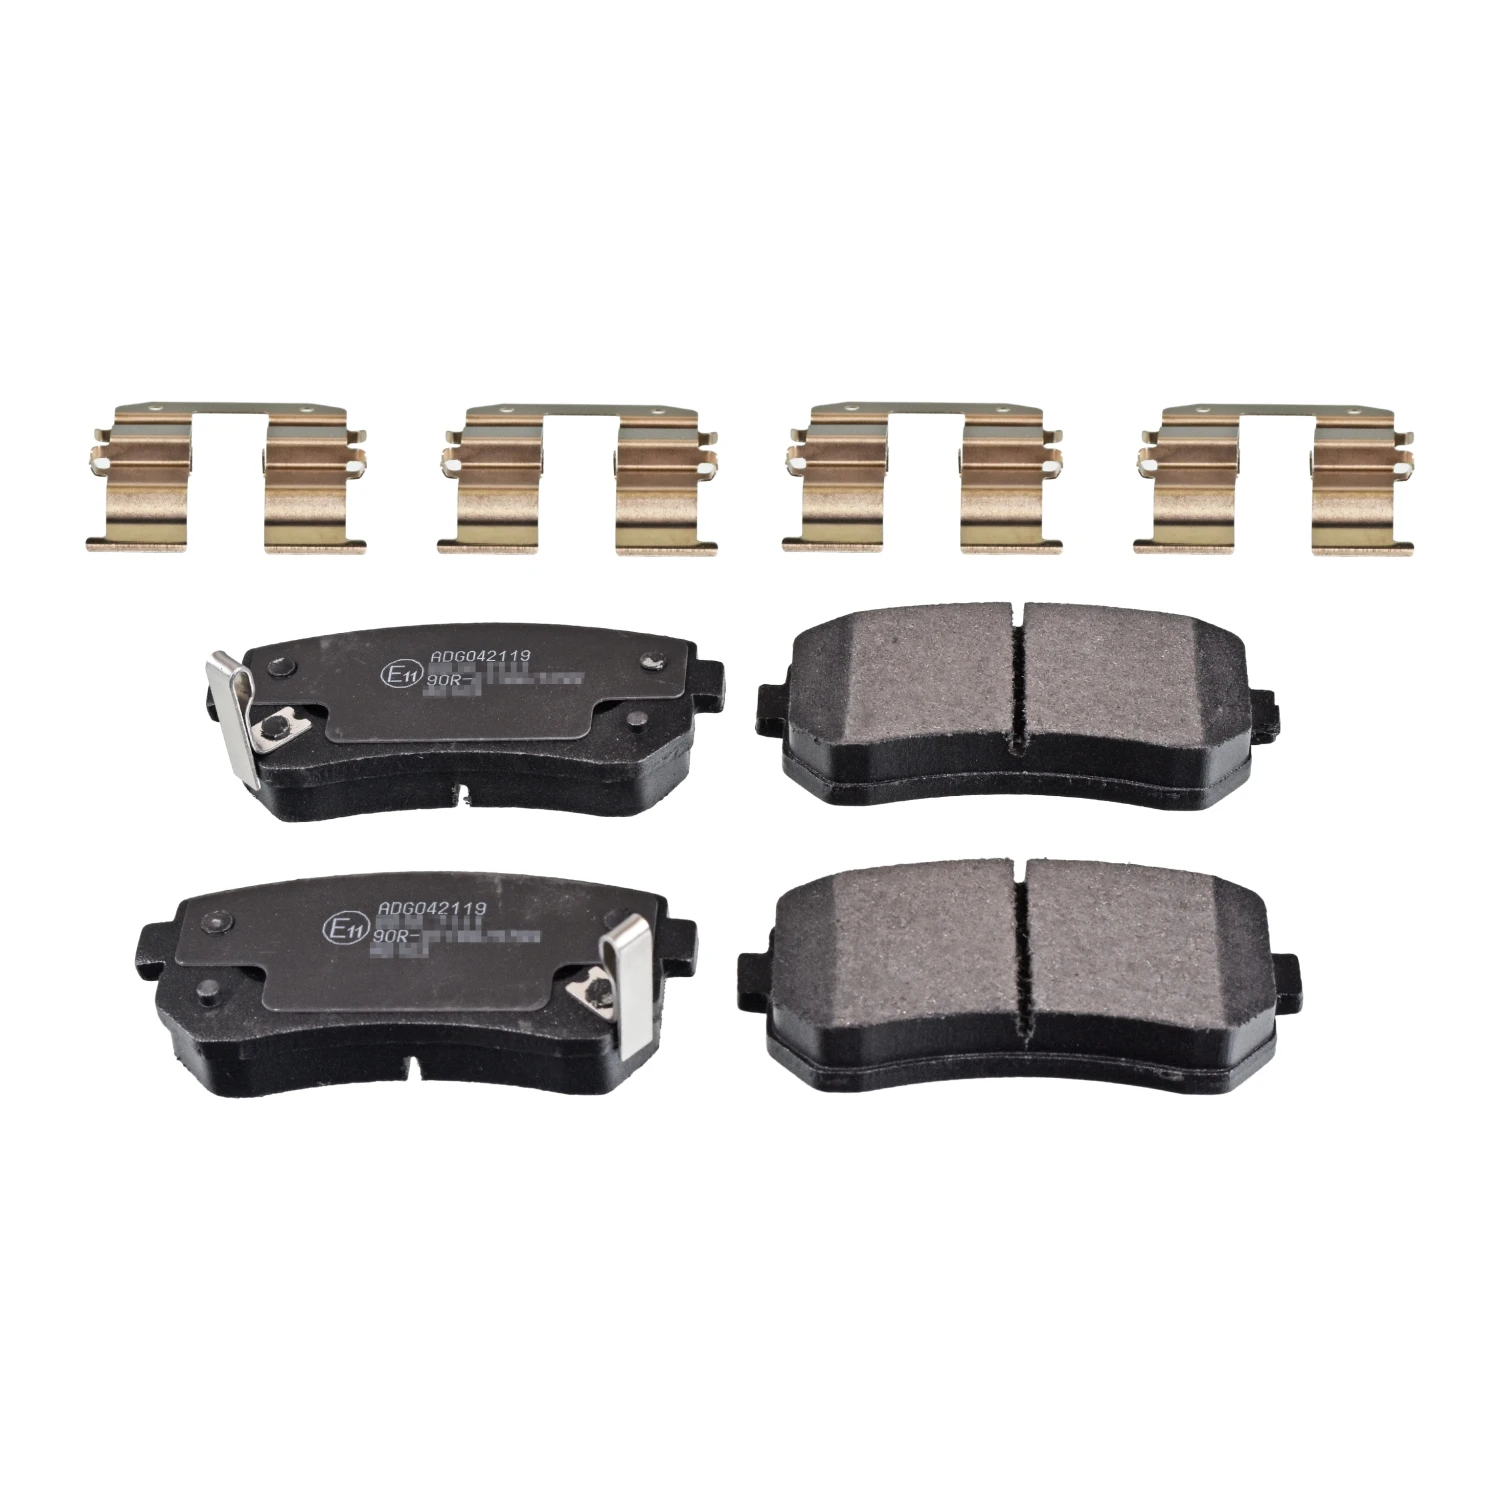 Fits Hyundai ix35 1.7 CRDi Genuine Borg /& Beck Rear Brake Pads Set